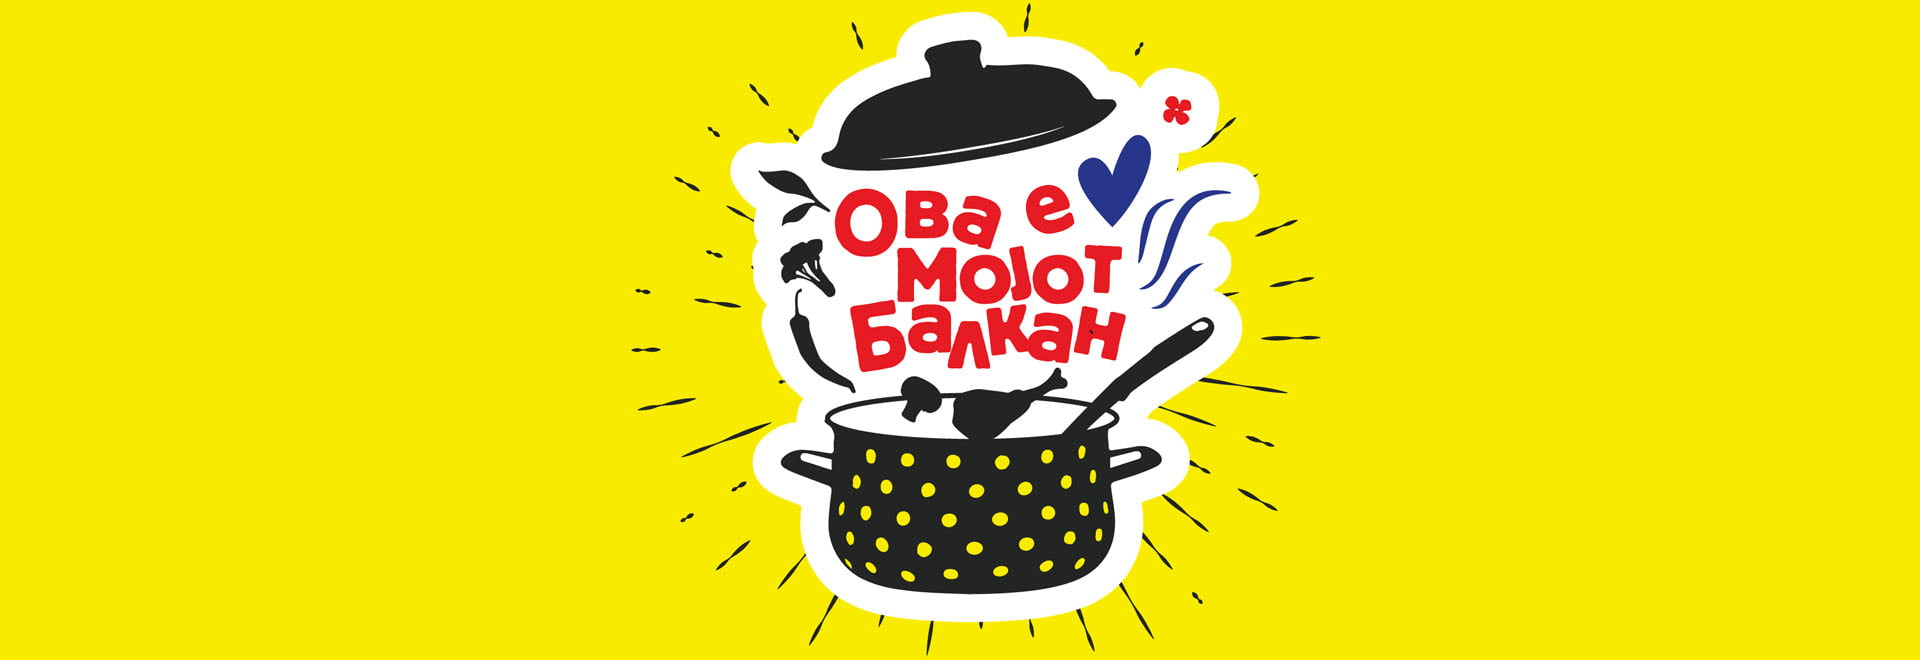 This is My Balkan – Culinary Tours and Cool souvenirs for Promotion of Intercultural Learning and Dialogue image